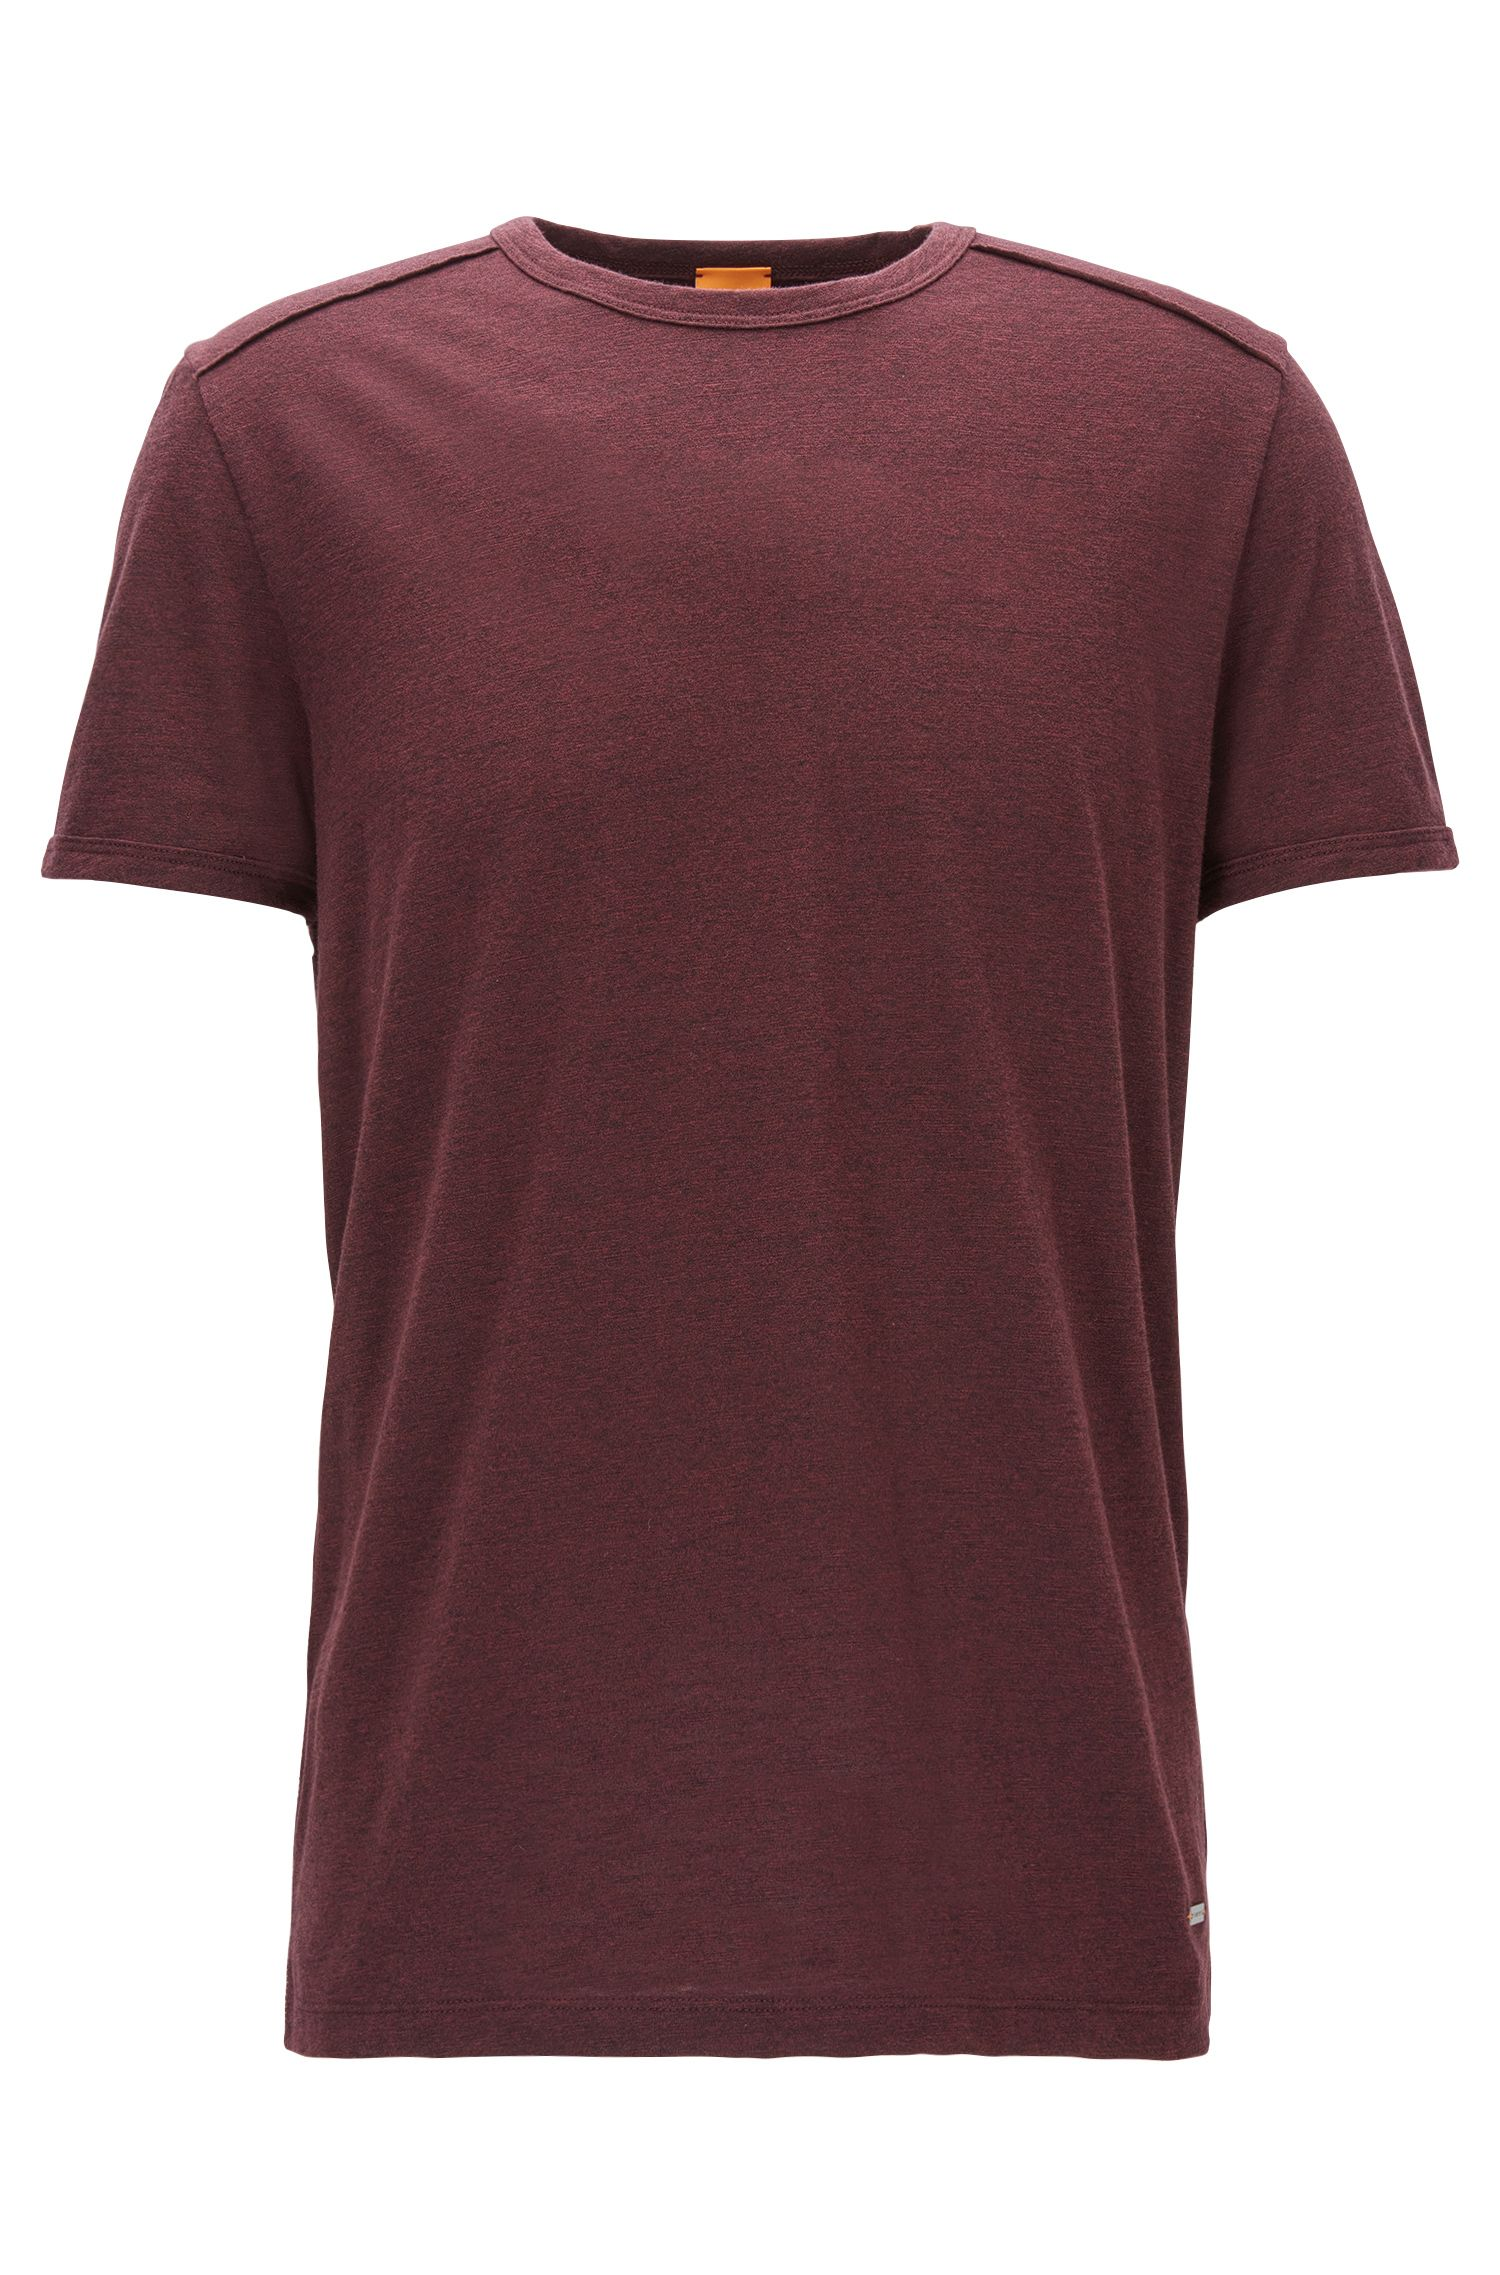 T-shirt Relaxed Fit en jersey mouliné